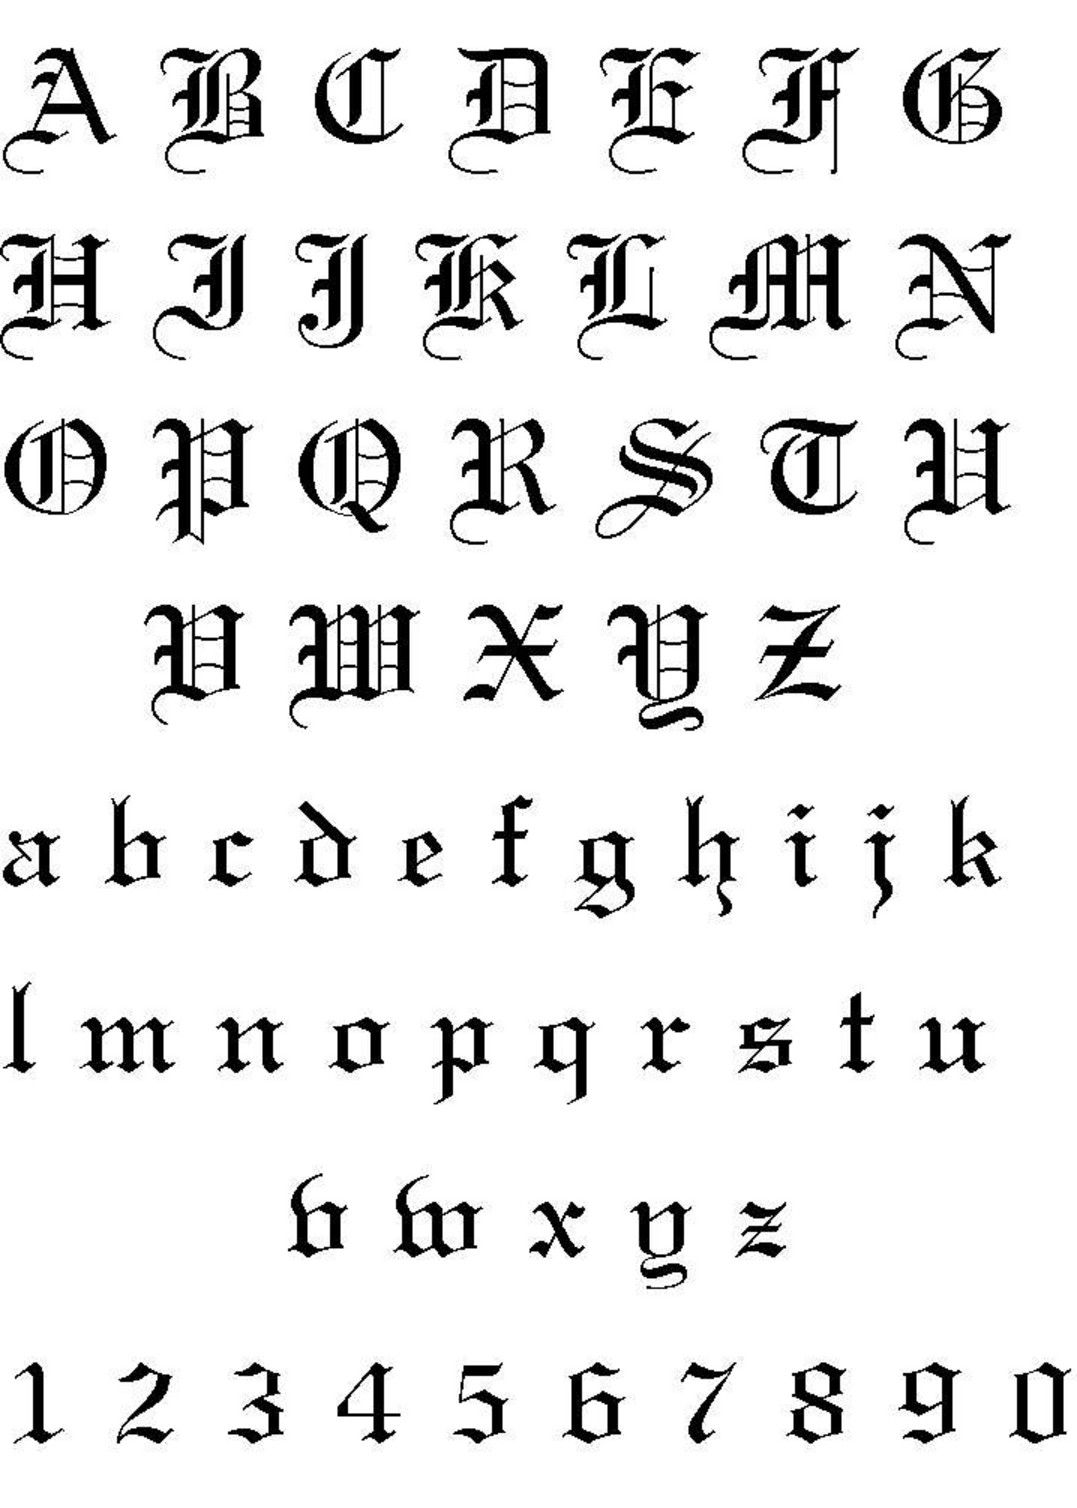 Tribal Tattoo Designs Outstanding Tribal Tattoo Alphabet Ideas And Designs